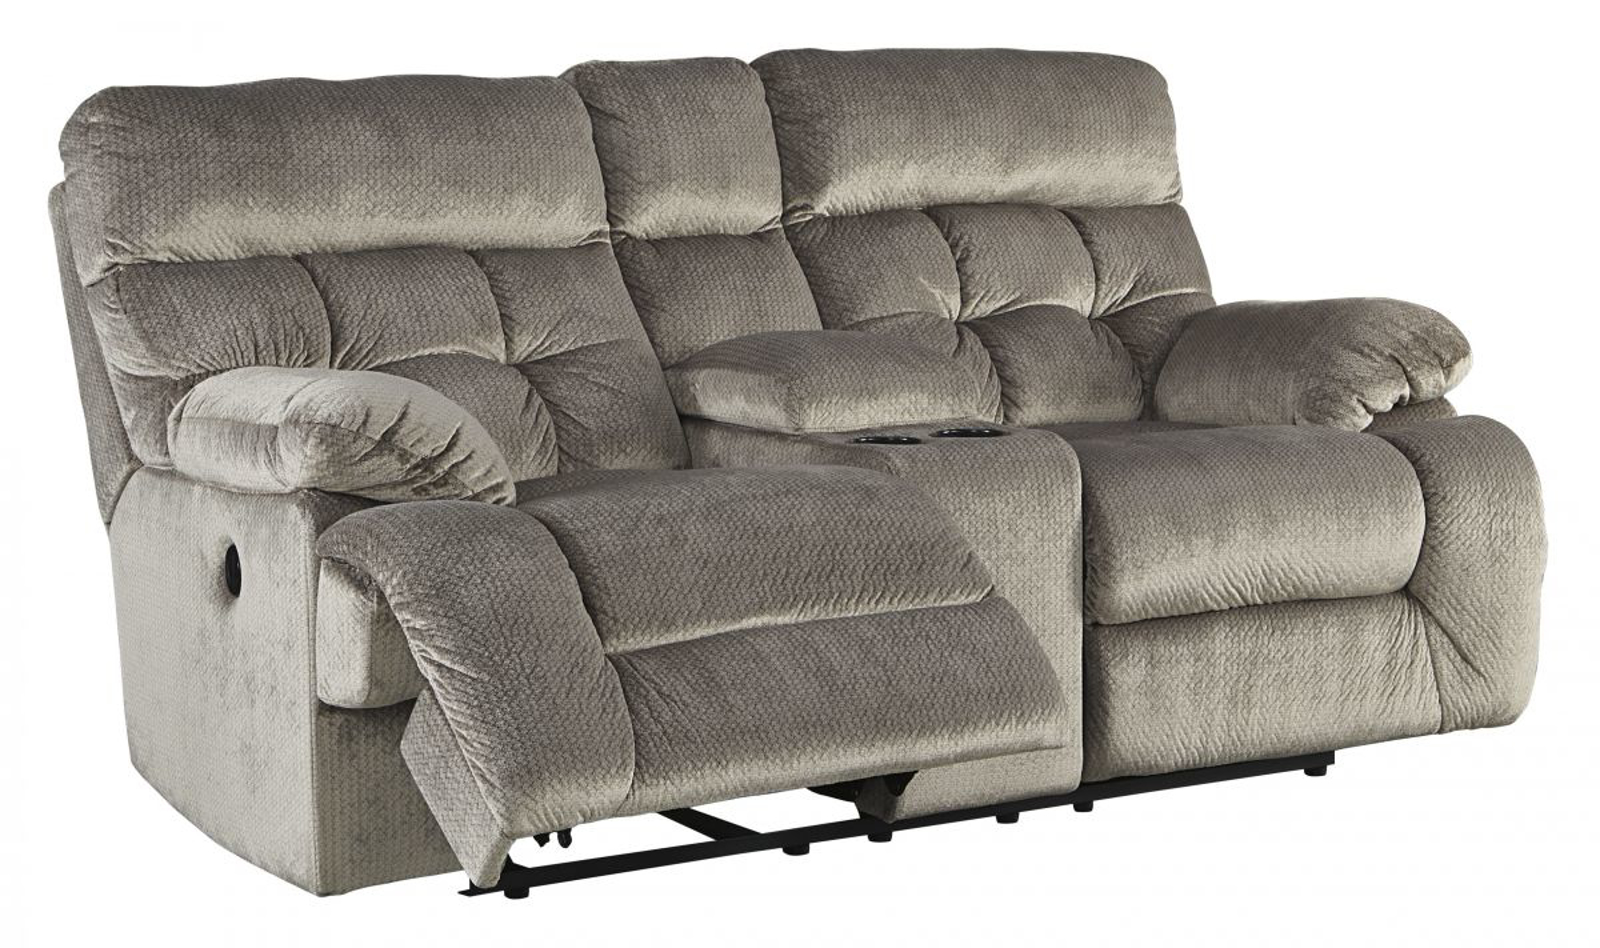 Surprising Brassville Reclining Loveseat Pabps2019 Chair Design Images Pabps2019Com